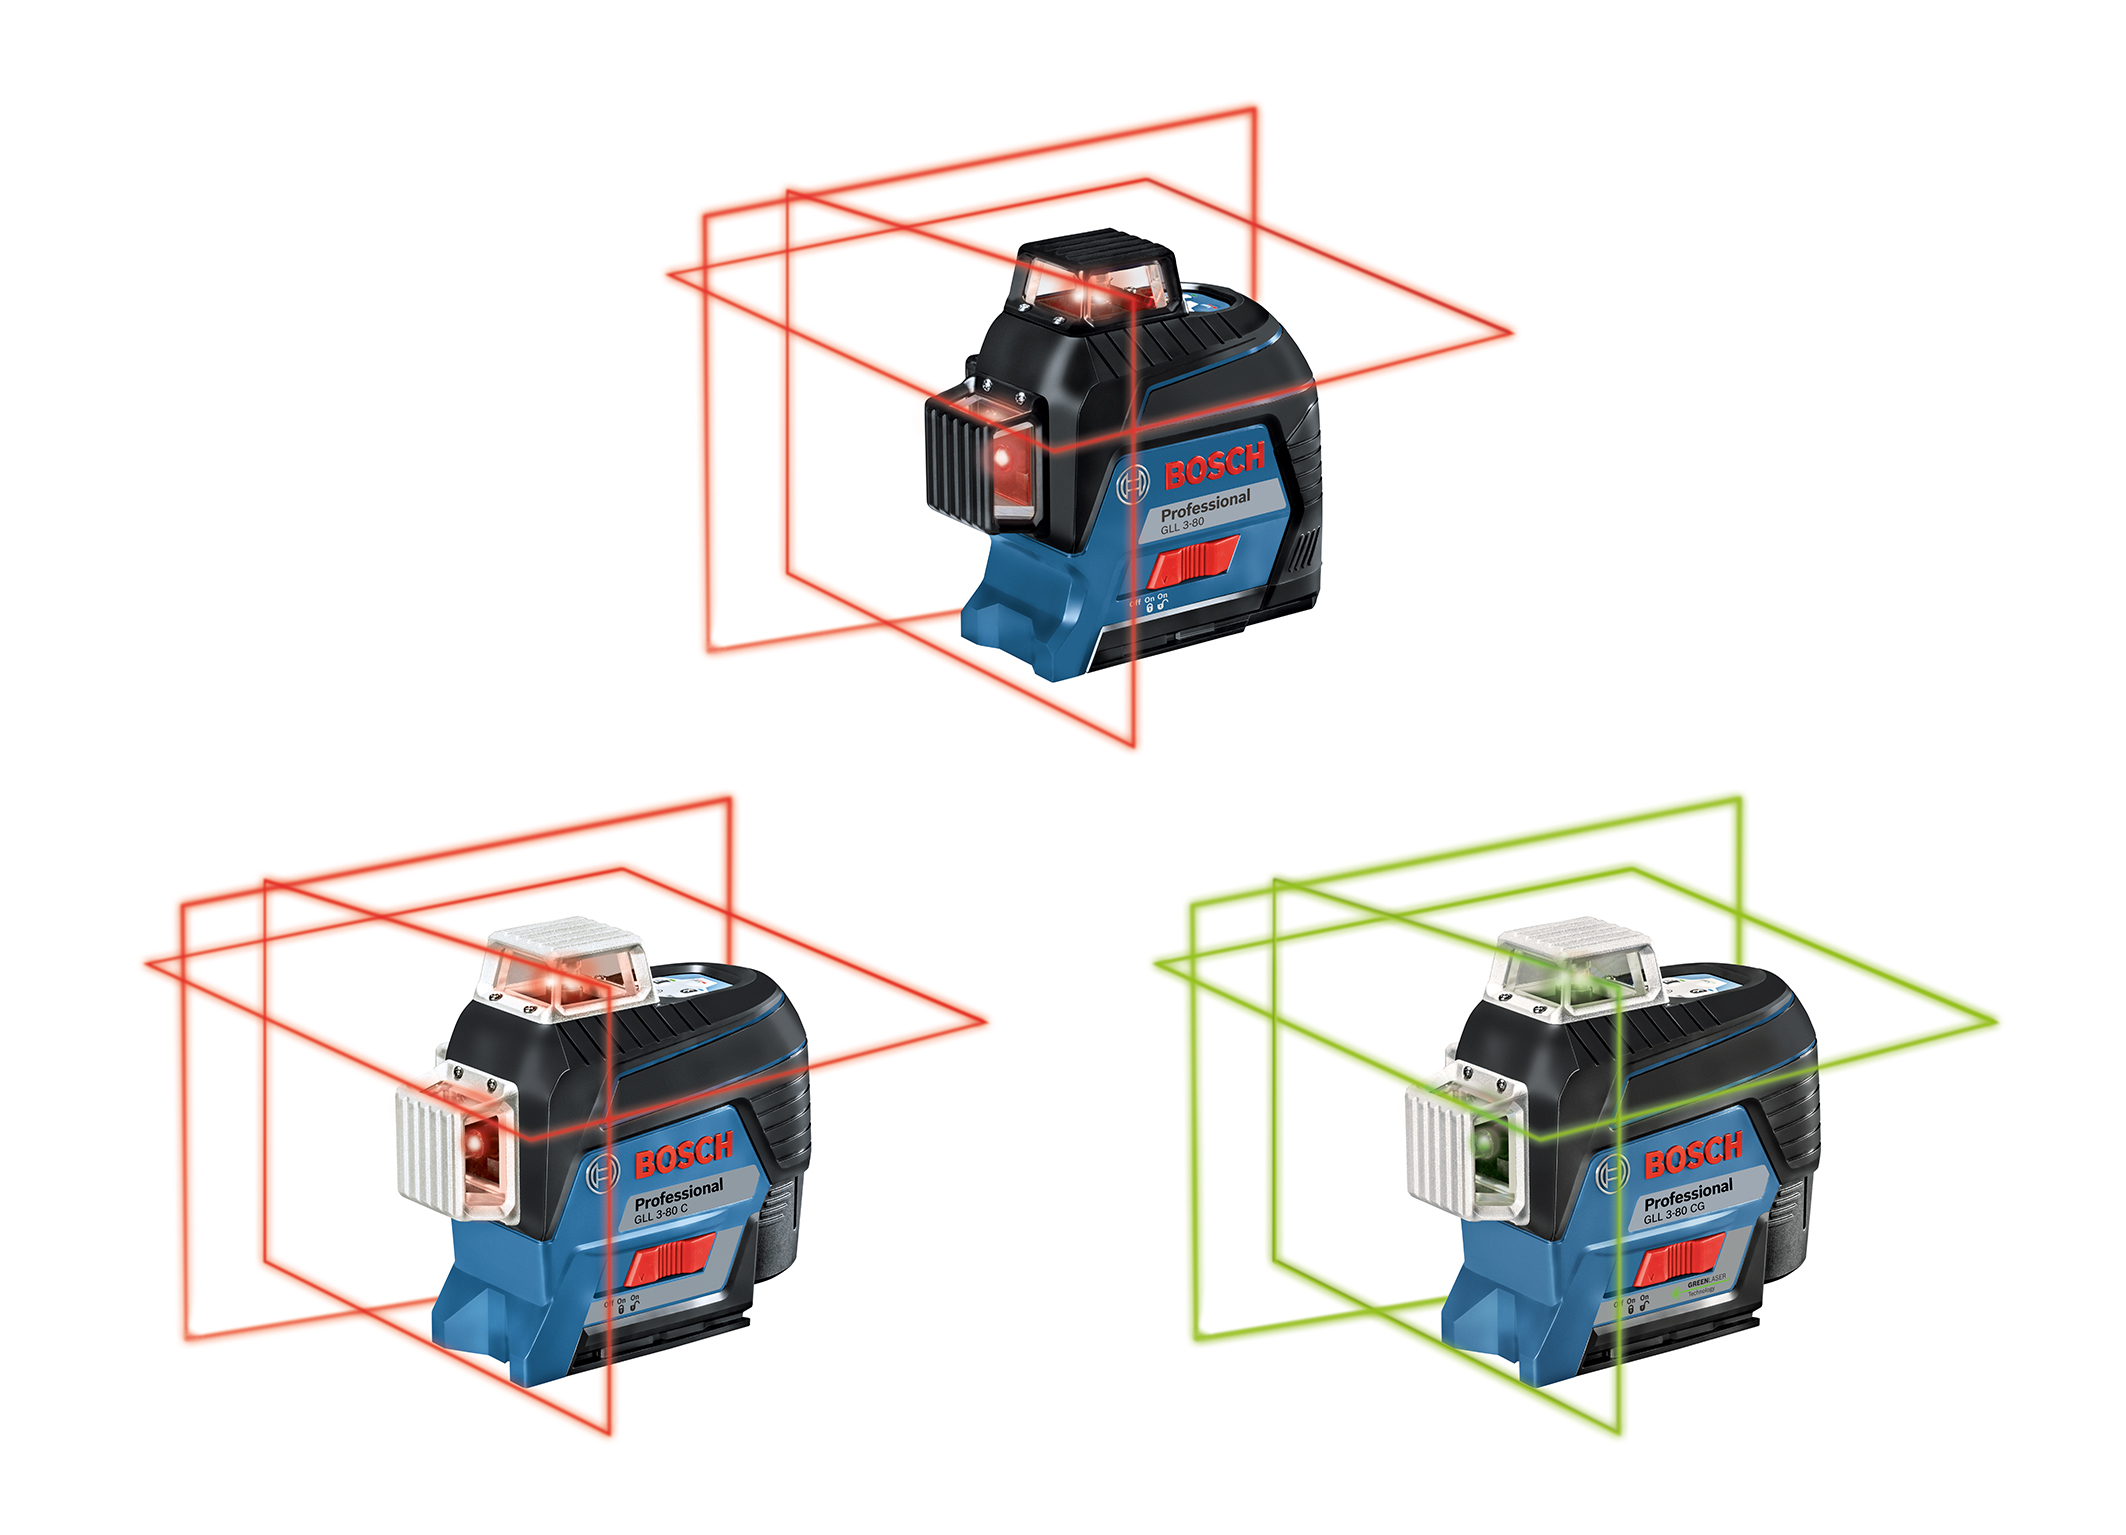 12fddf9f8b99b5 Connectivity function for precise alignment  New generation of professional  Bosch line lasers